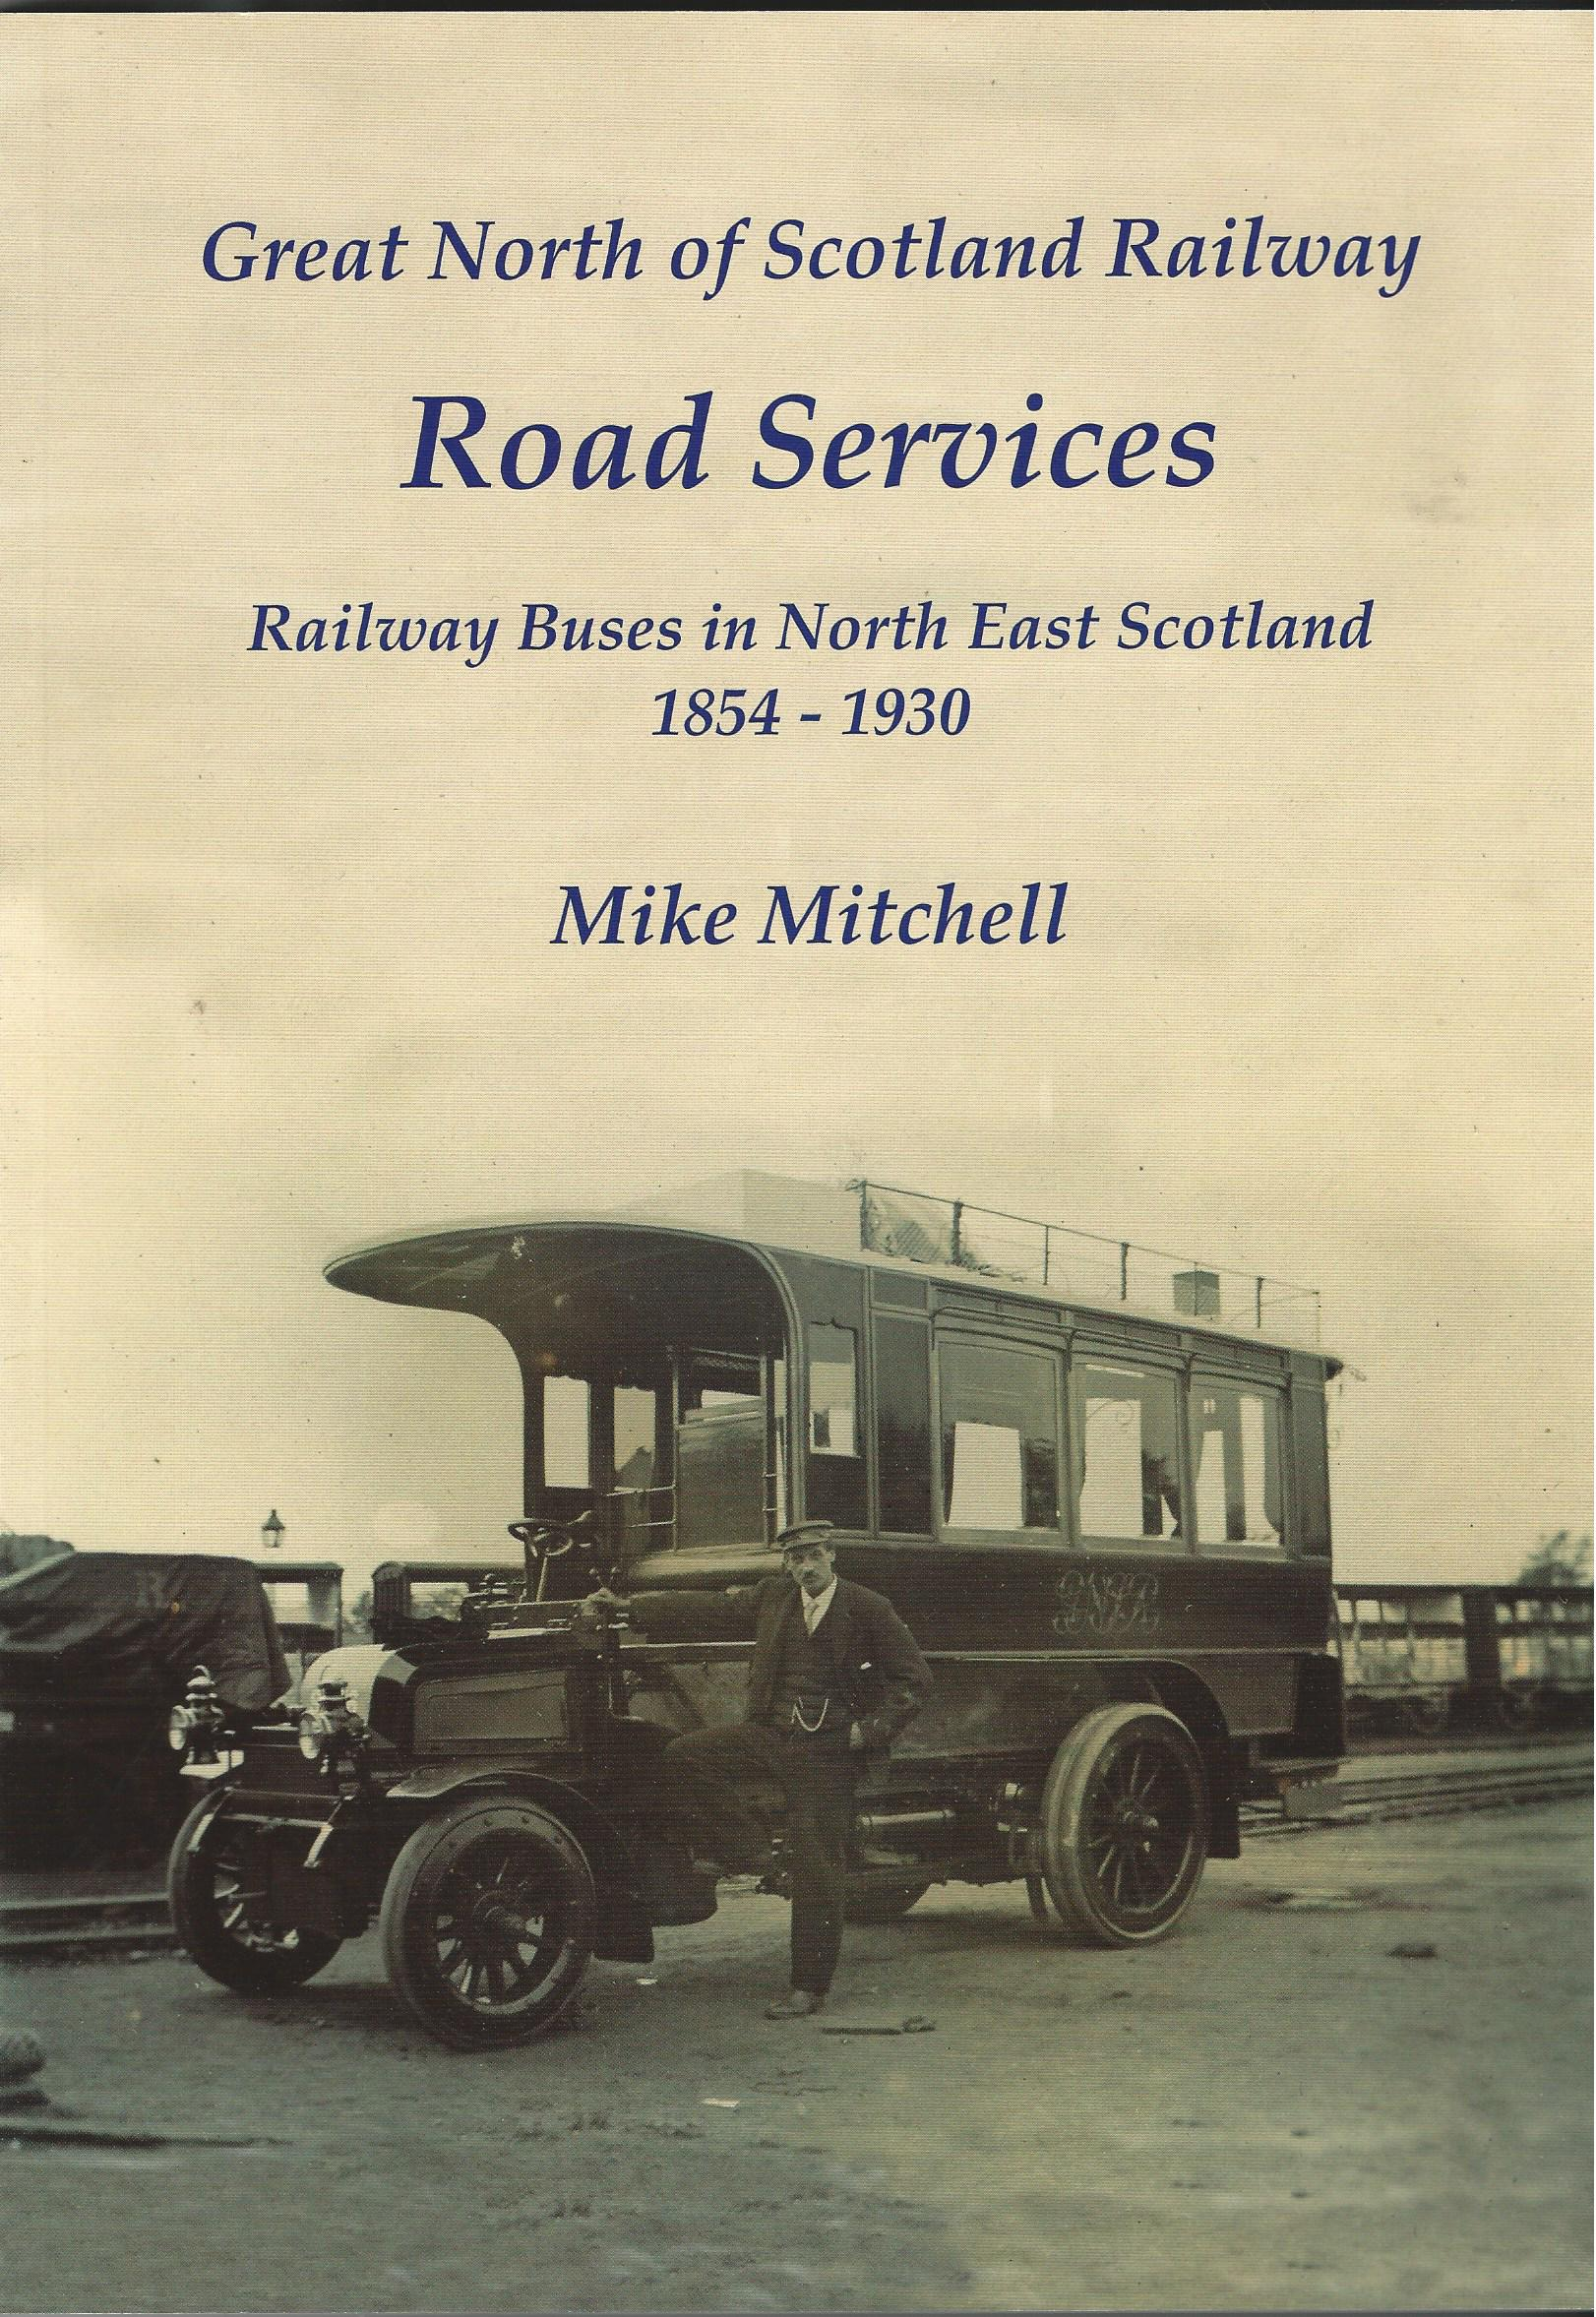 Image for Great North of Scotland Railway Road Services: Railway Buses in North East Scotland 1854-1930